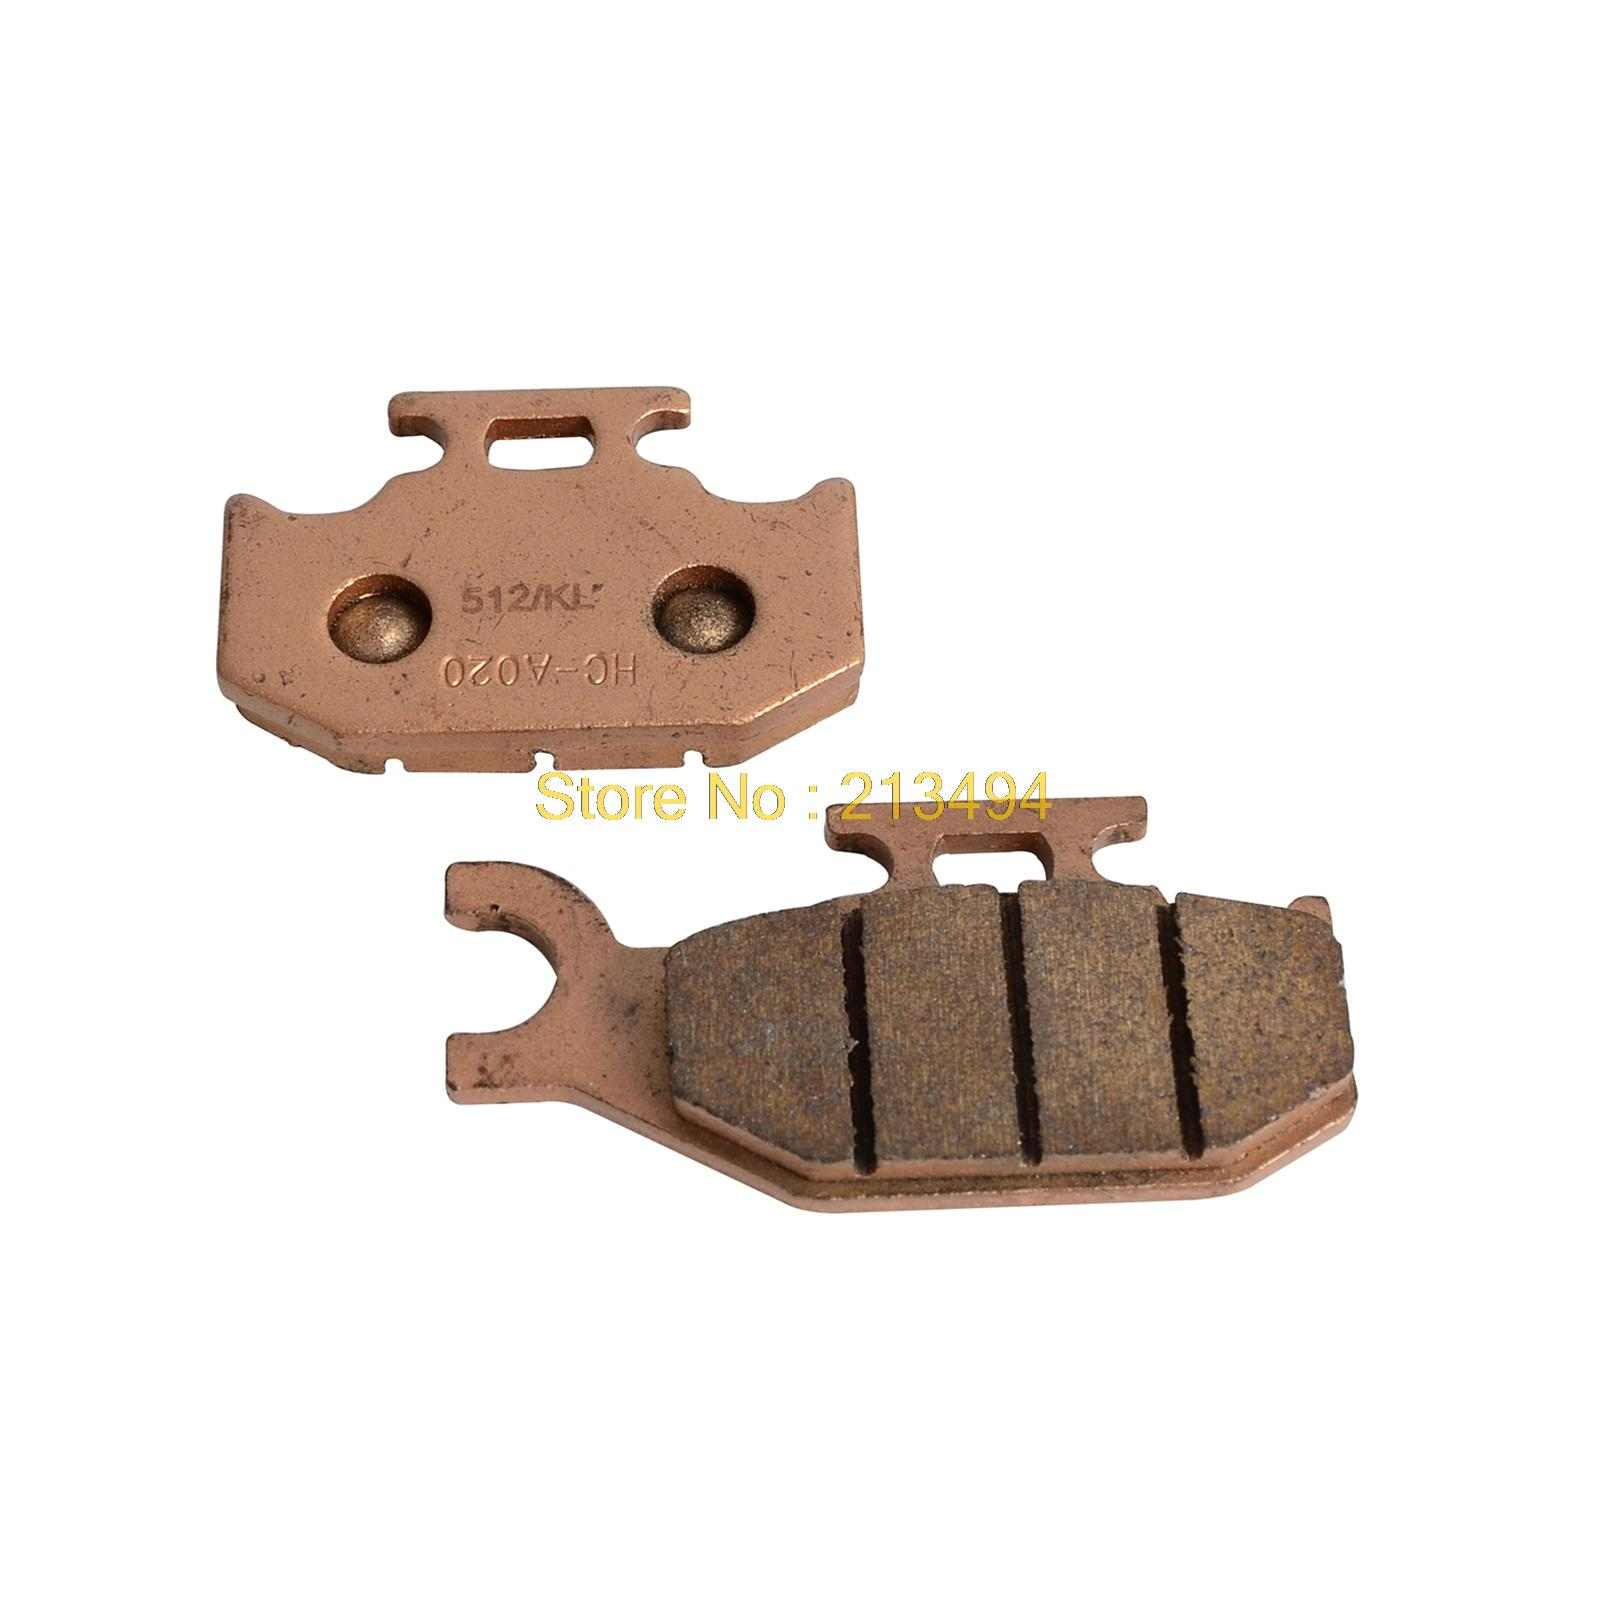 Motorcycle Rear Brake Pads For <font><b>UTV</b></font> all <font><b>Hisun</b></font> 400 <font><b>500</b></font> 550 700 800 NEW image